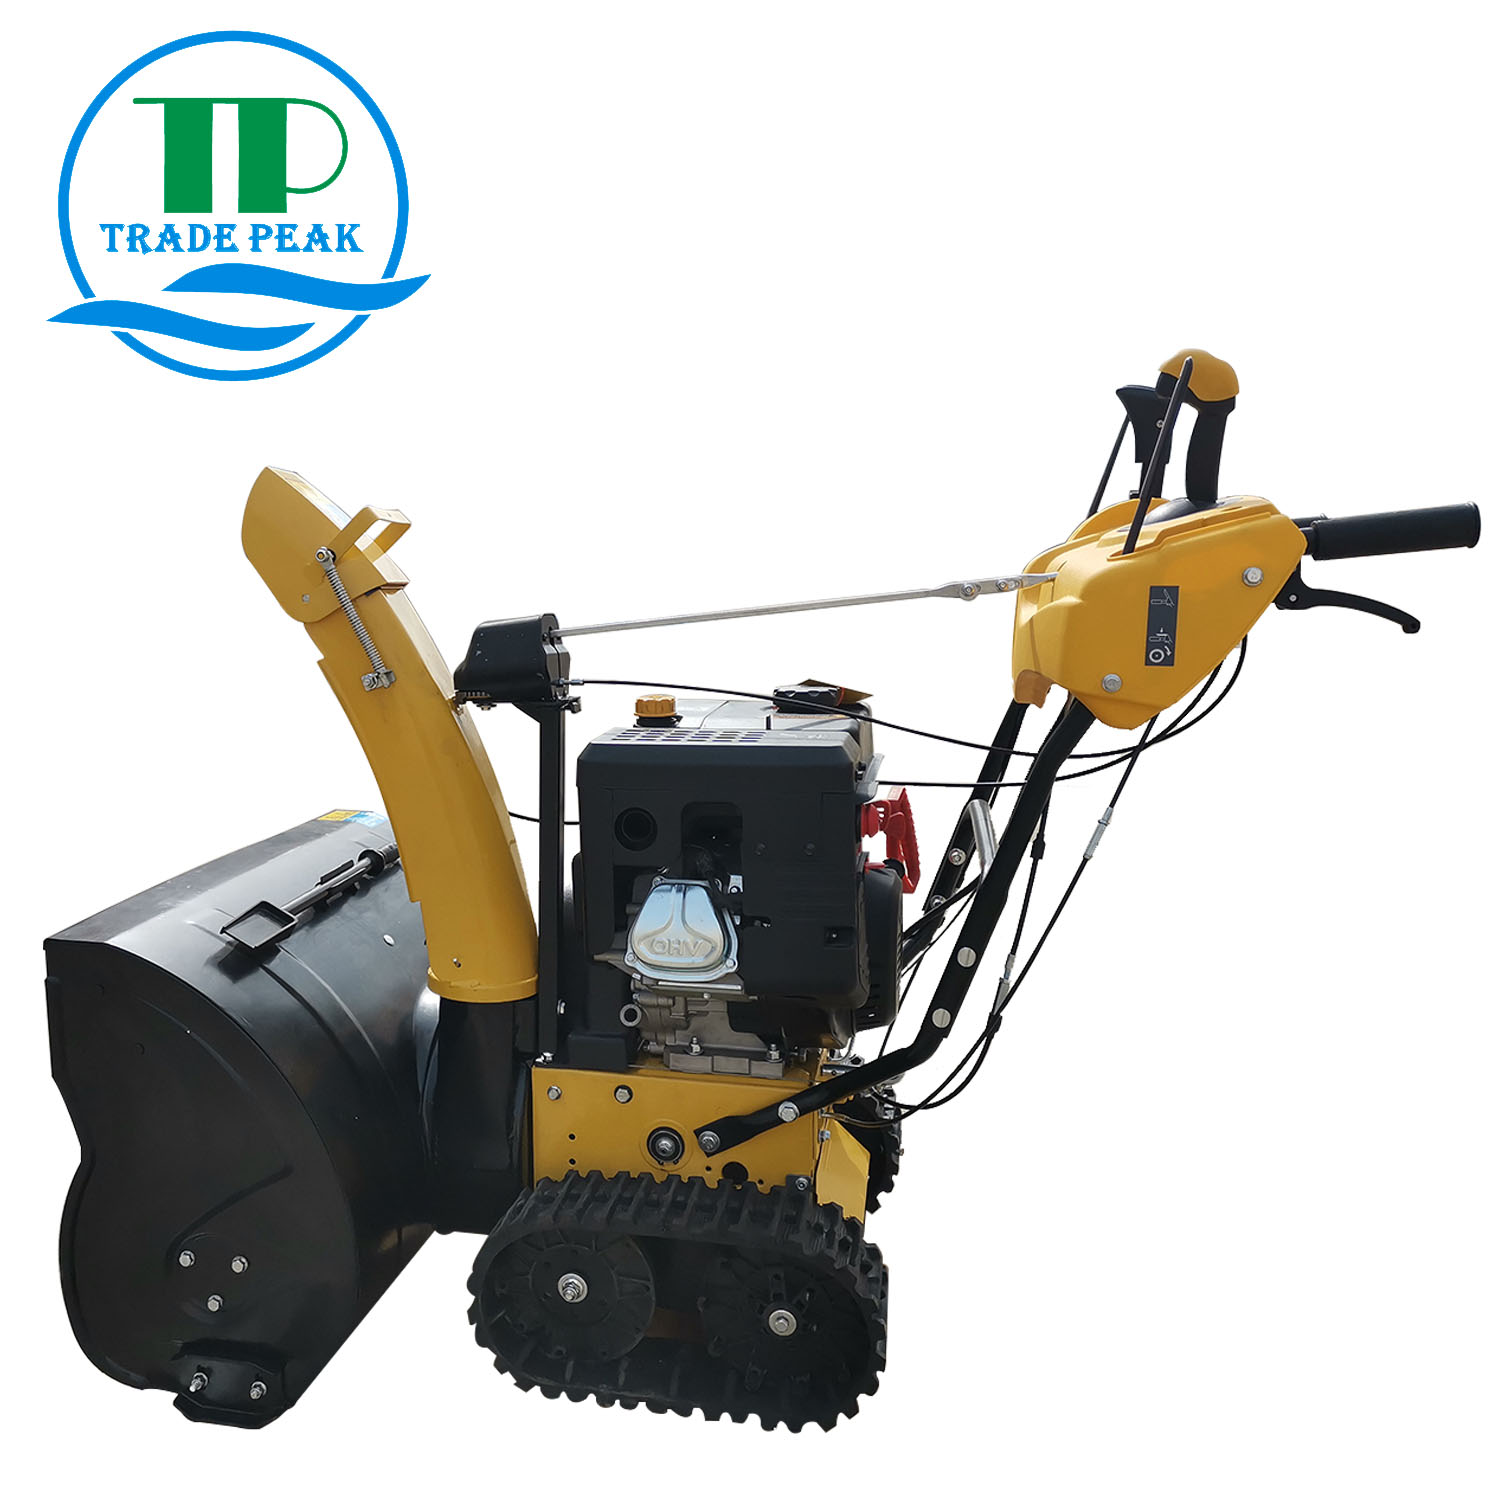 Snow Thrower Market Is Booming Worldwide